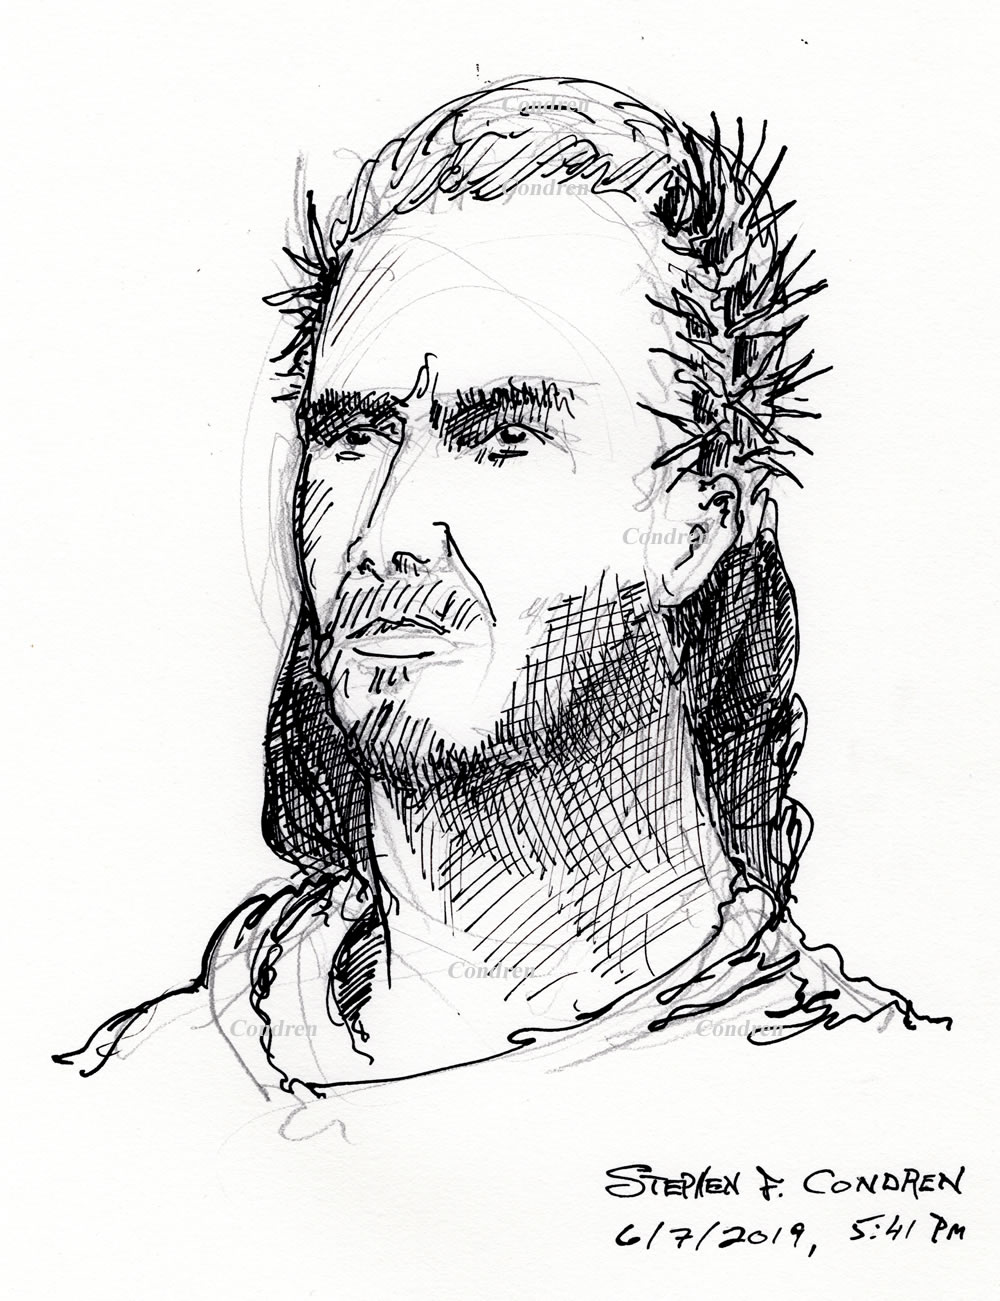 Pen & ink drawing of Jesus Christ wearing a stephanos, or crown of thorns, by artist Stephen F. Condren.